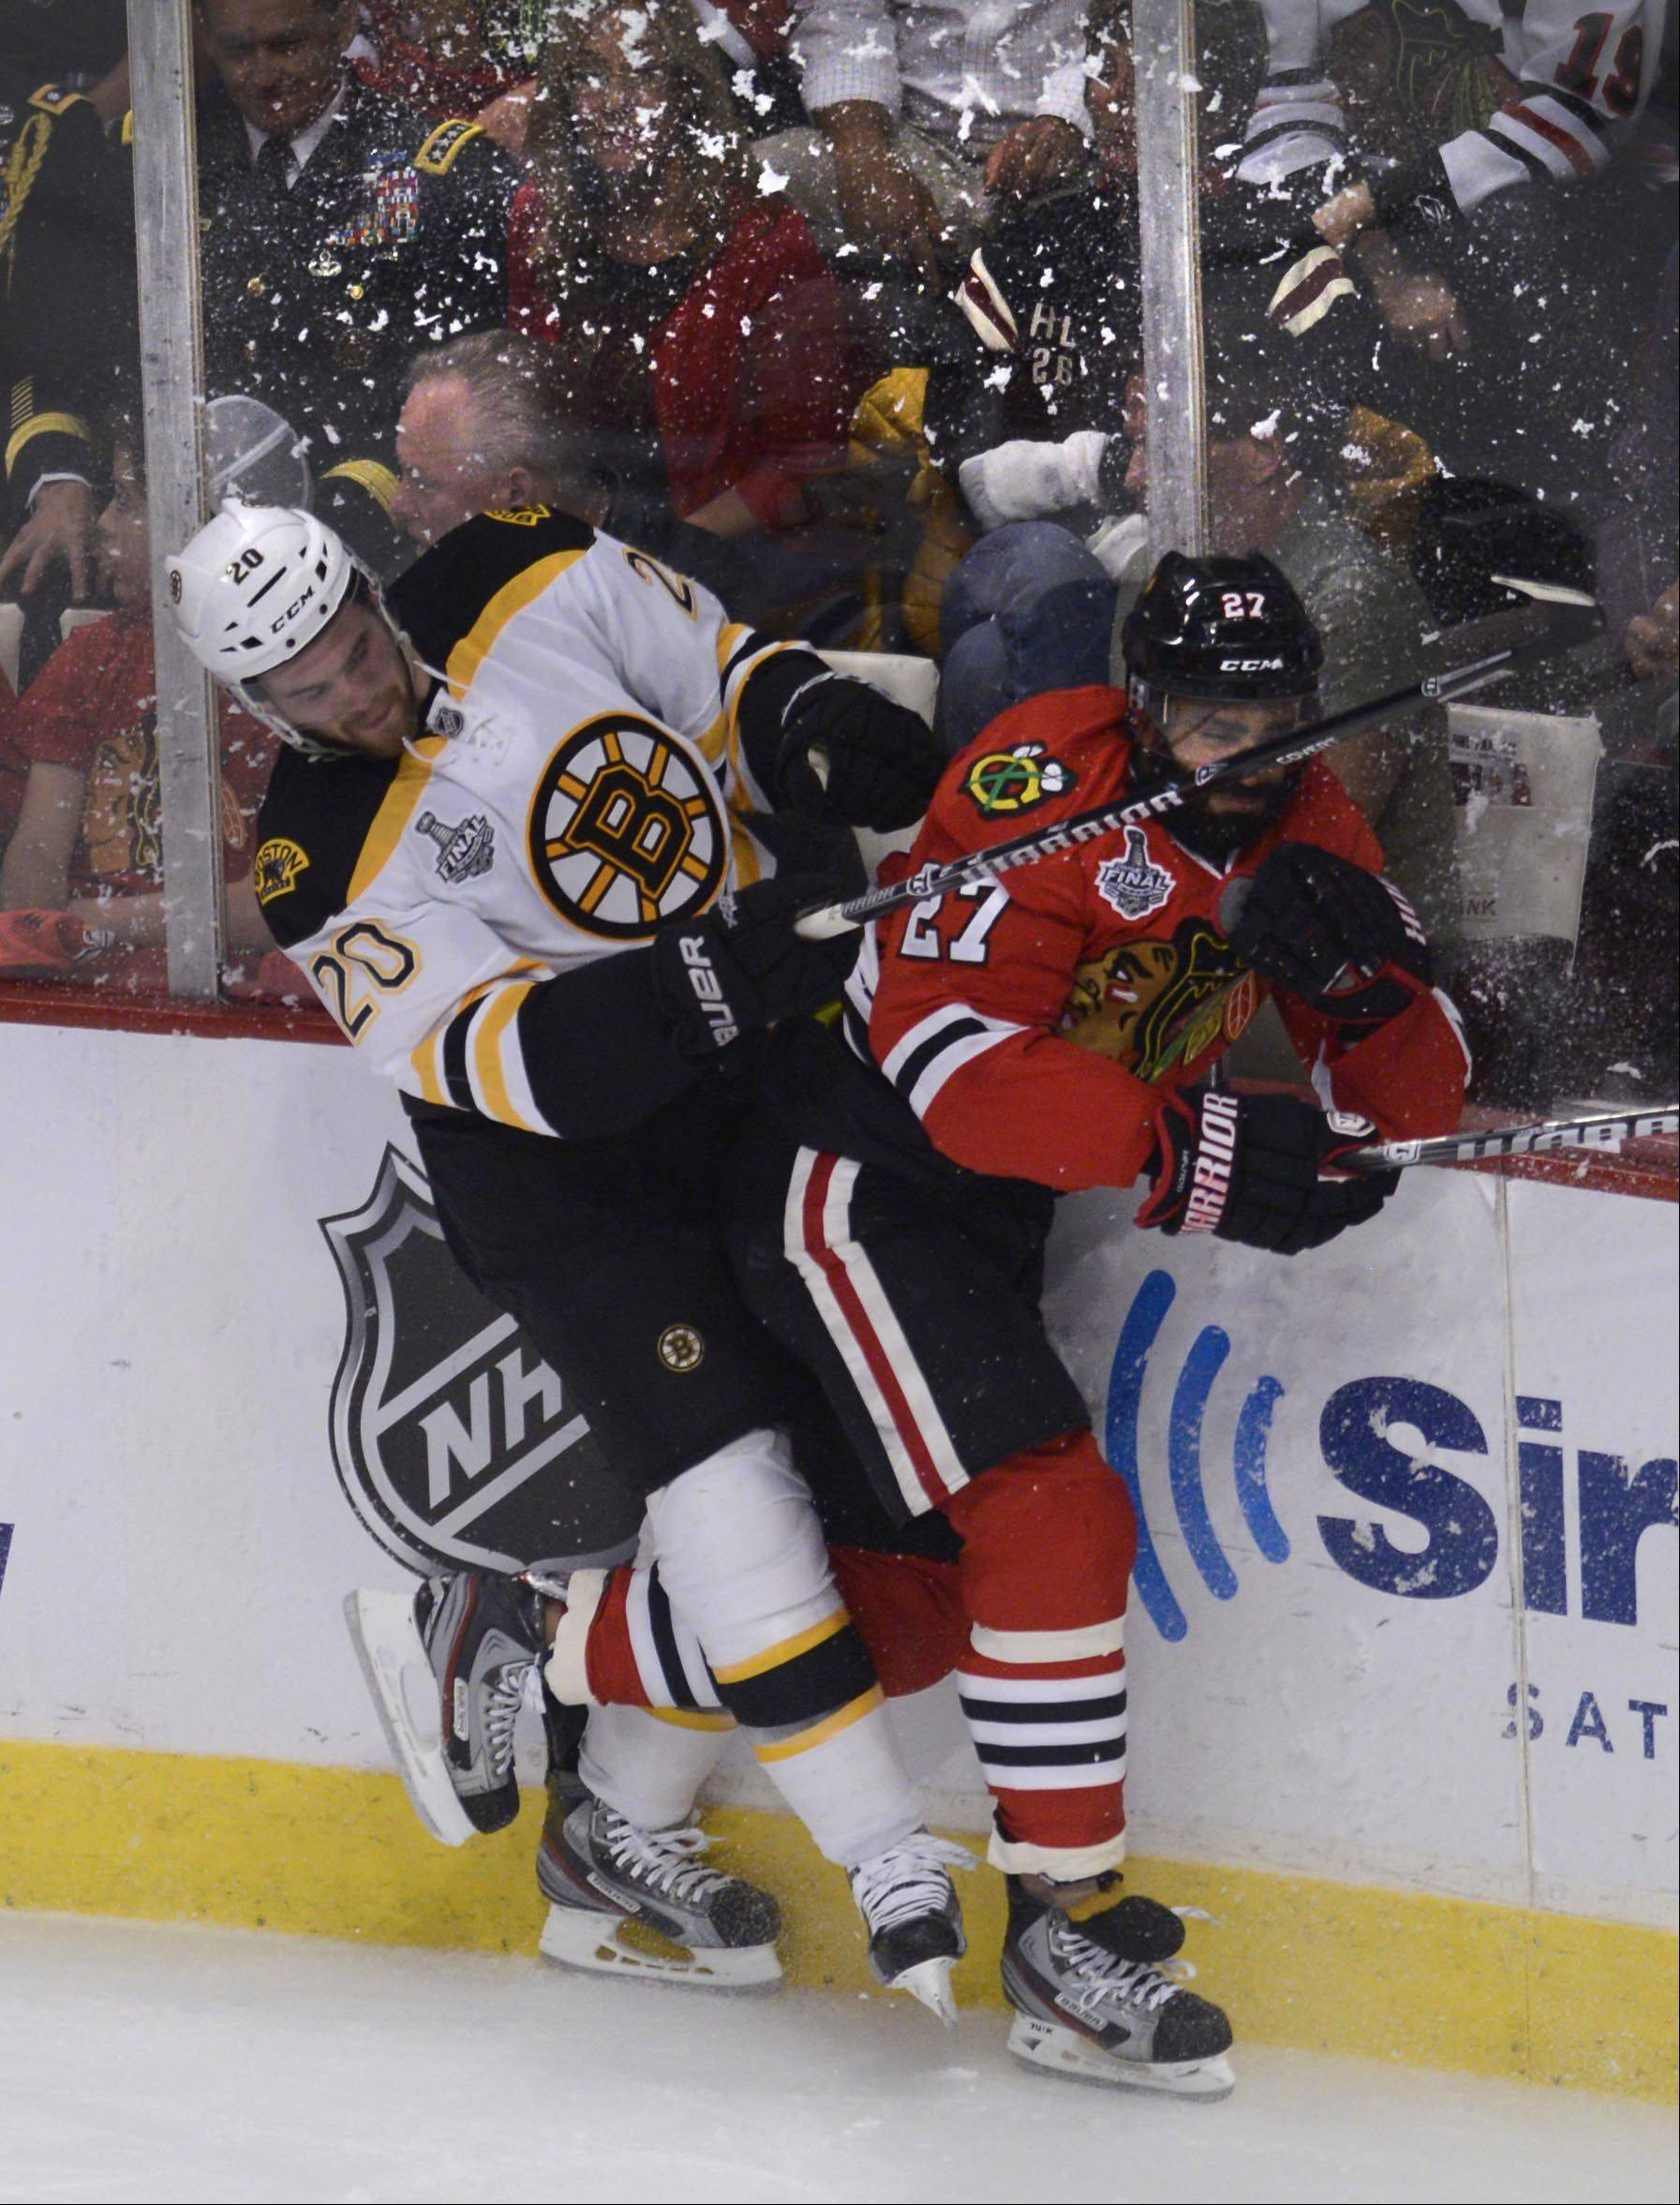 Chicago Blackhawks defenseman Johnny Oduya and Boston Bruins left wing Daniel Paille crash into the boards.